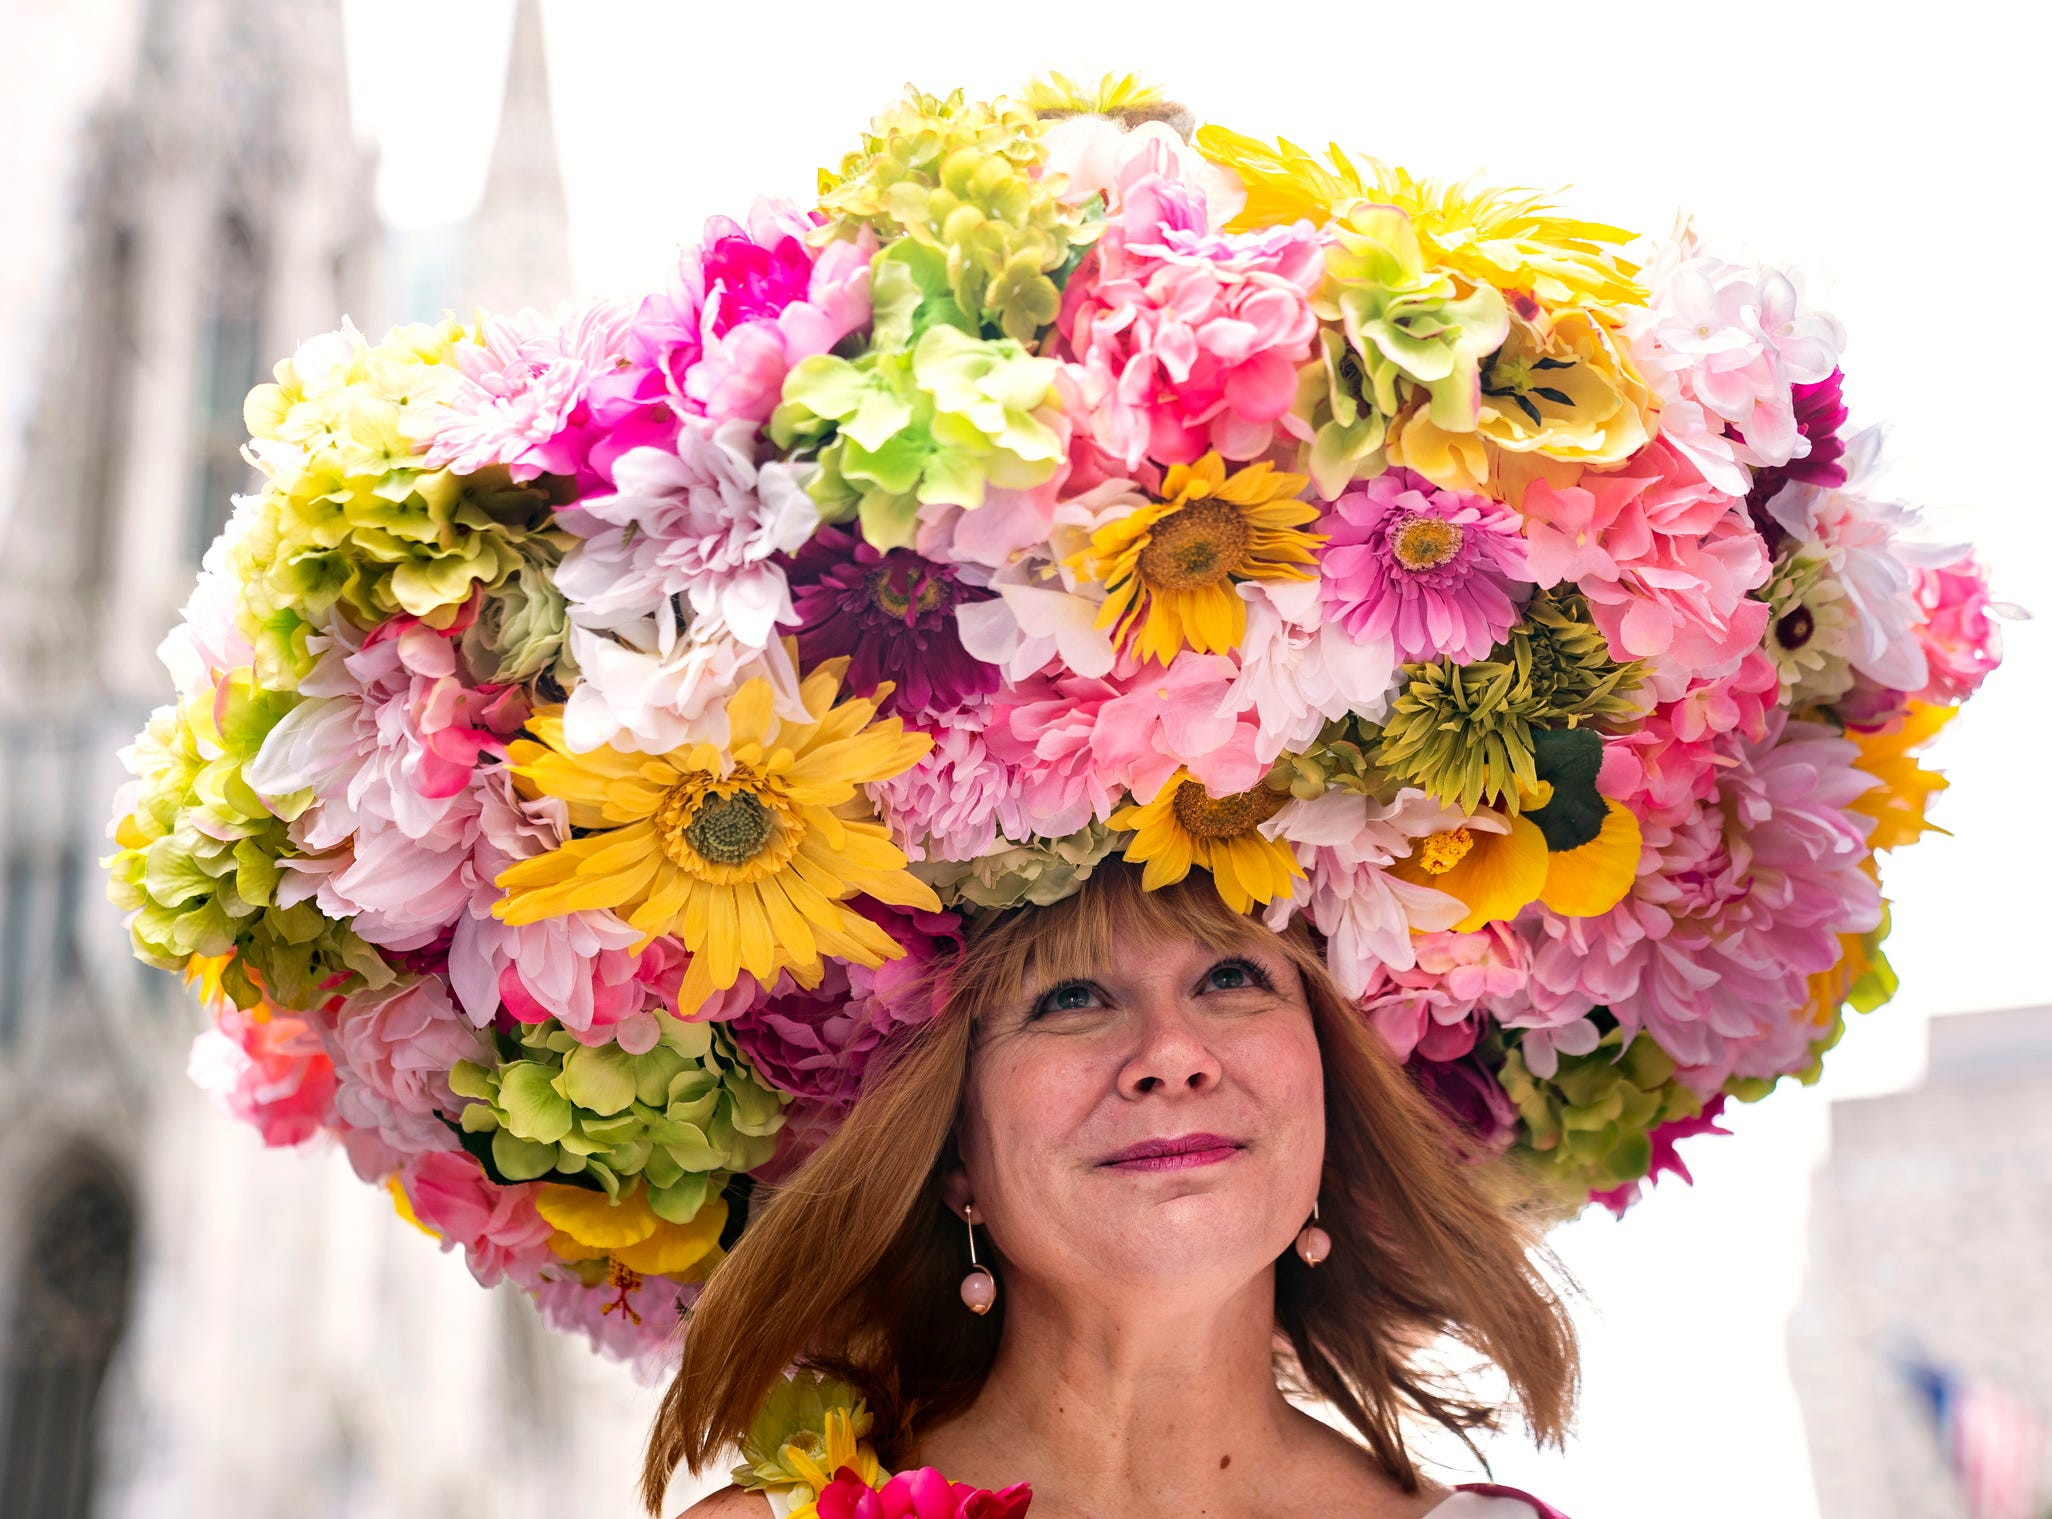 A costumed participant marches during the Easter Parade and Bonnet Festival, Sunday, April 21, 2019, in New York.